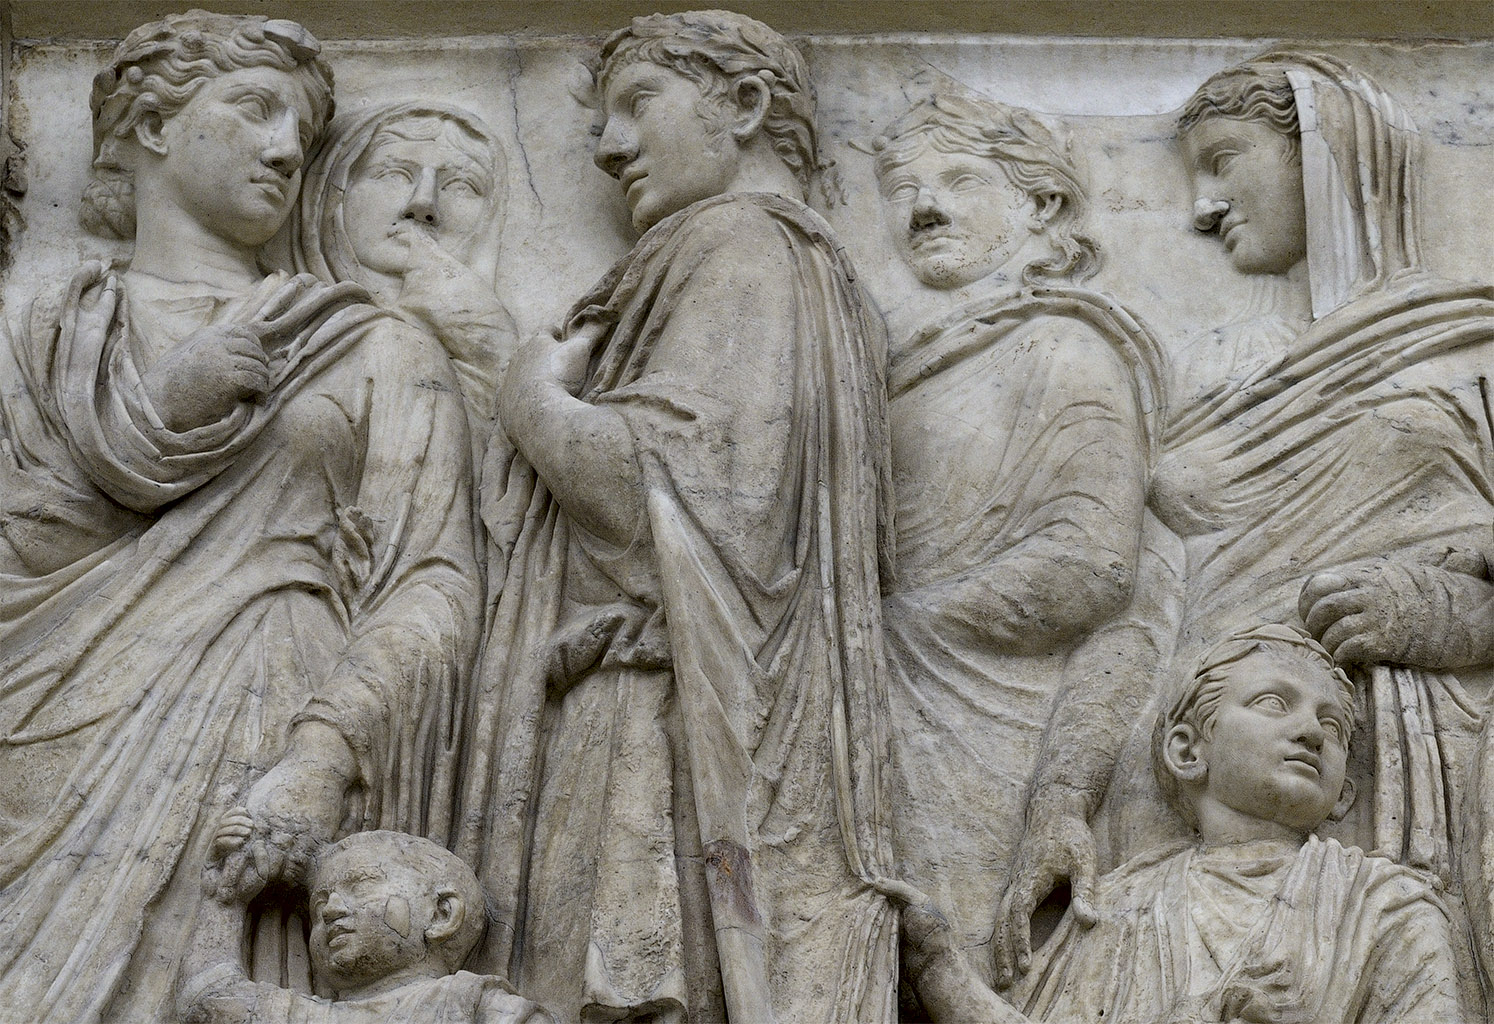 Antonia minor, Germanicus, Drusus, Antonia major and Cneus Domitius Ahenobarbus. South procession (close-up). 13—9 BCE. Rome, Museum of the Altar of Augustan Peace (Ara Pacis Augustae)